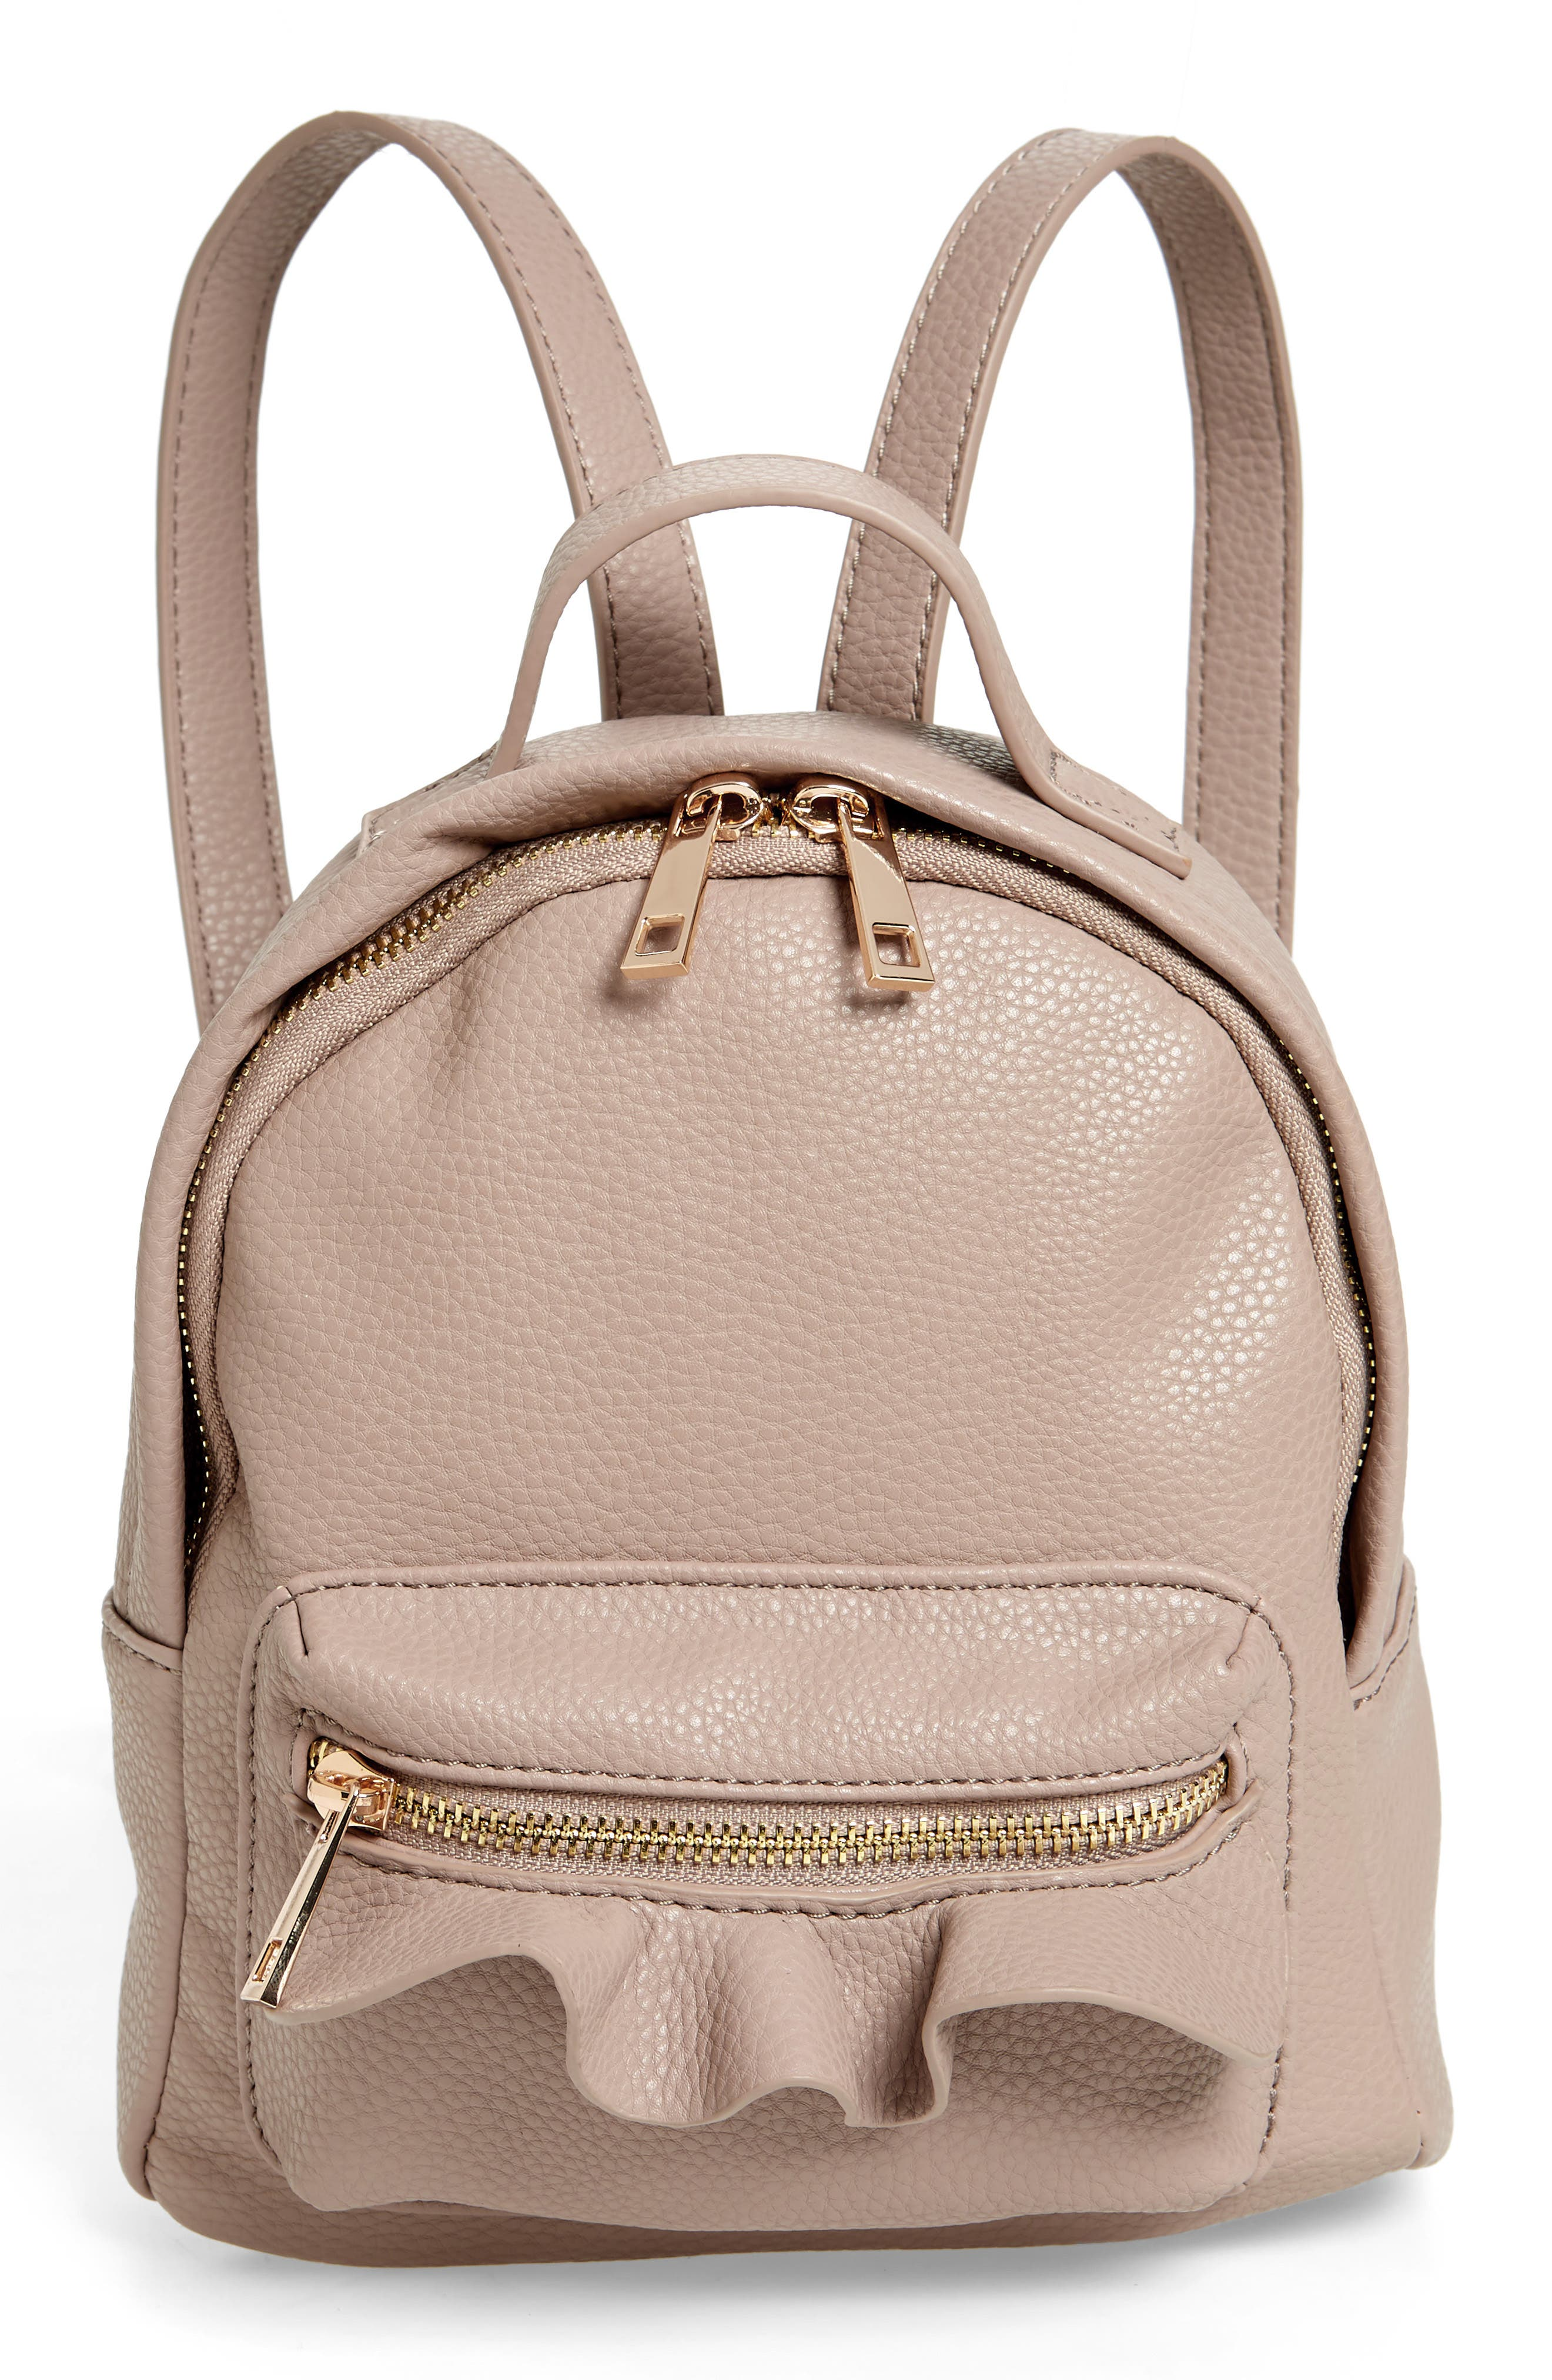 Tracie Mini Faux Leather Backpack,                             Main thumbnail 1, color,                             Taupe